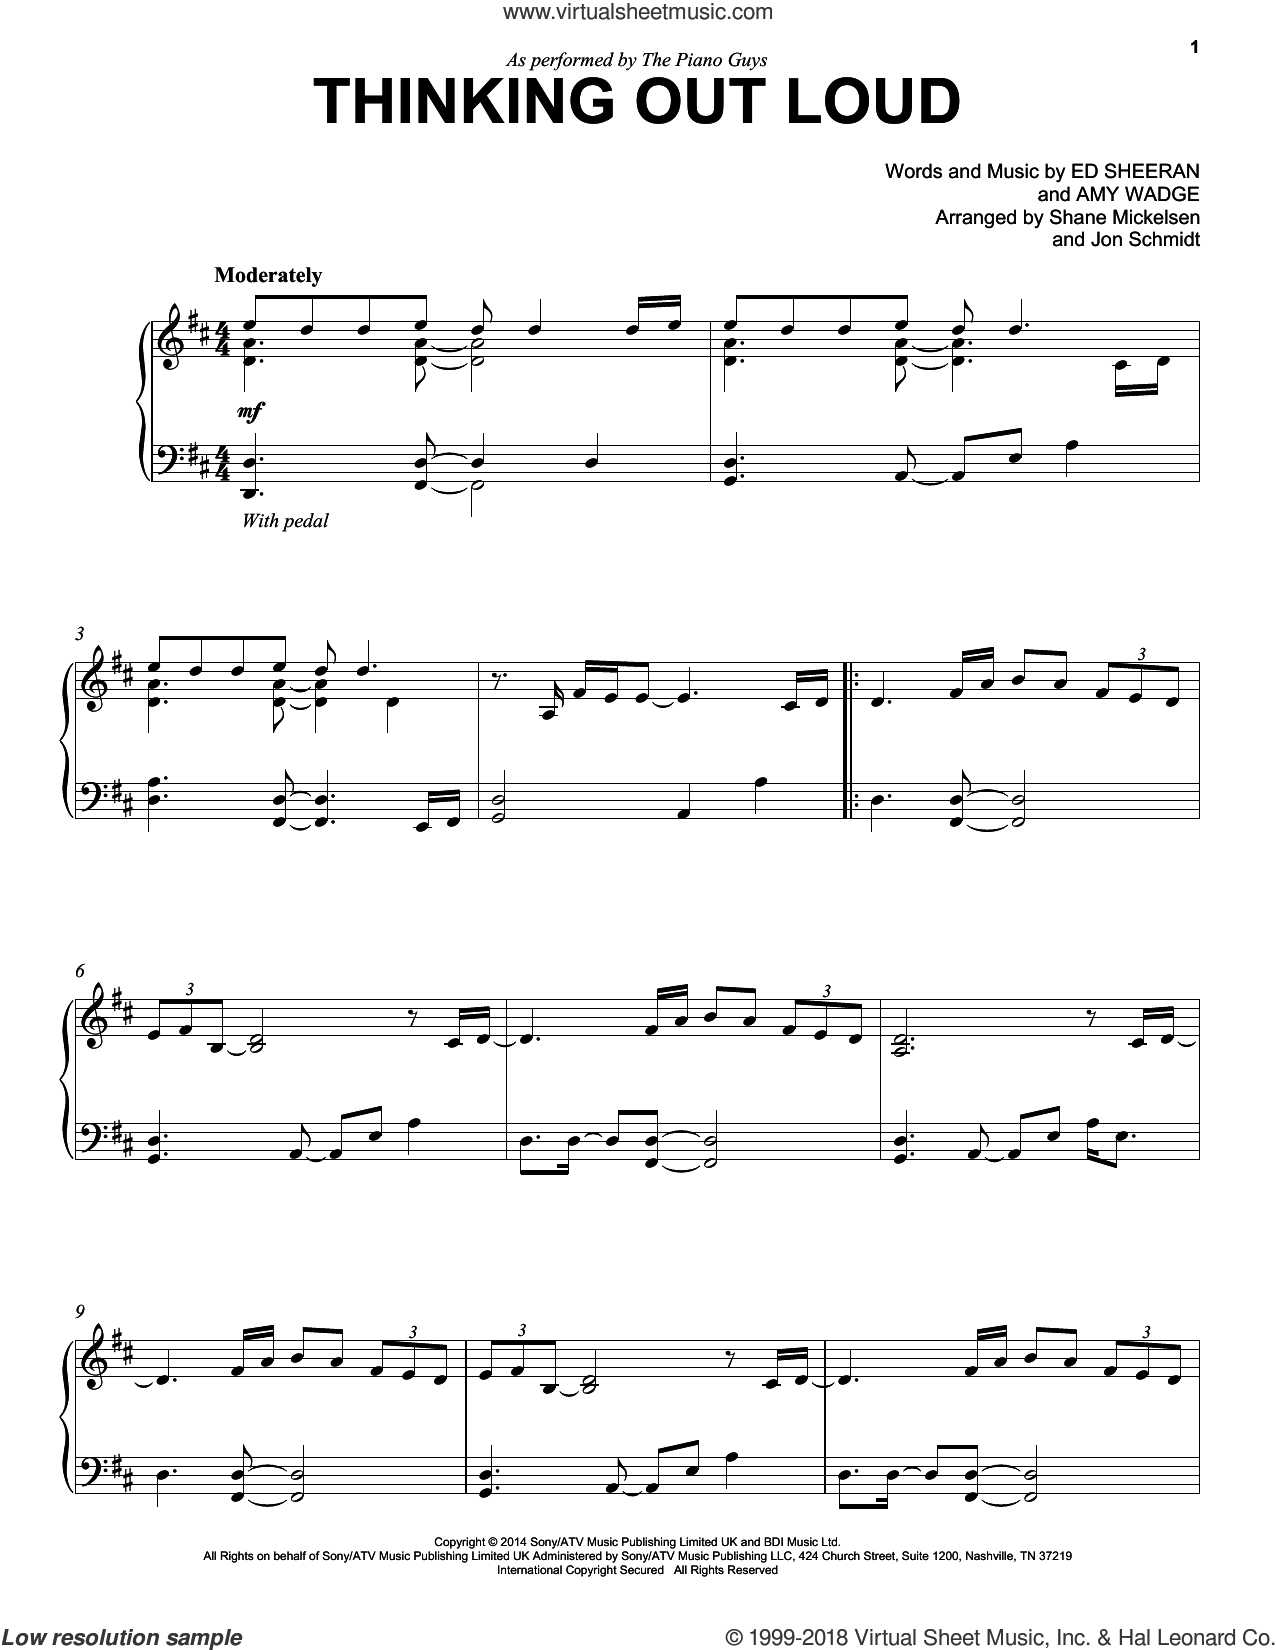 Thinking Out Loud sheet music for cello and piano by The Piano Guys, Amy Wadge and Ed Sheeran, wedding score, intermediate skill level